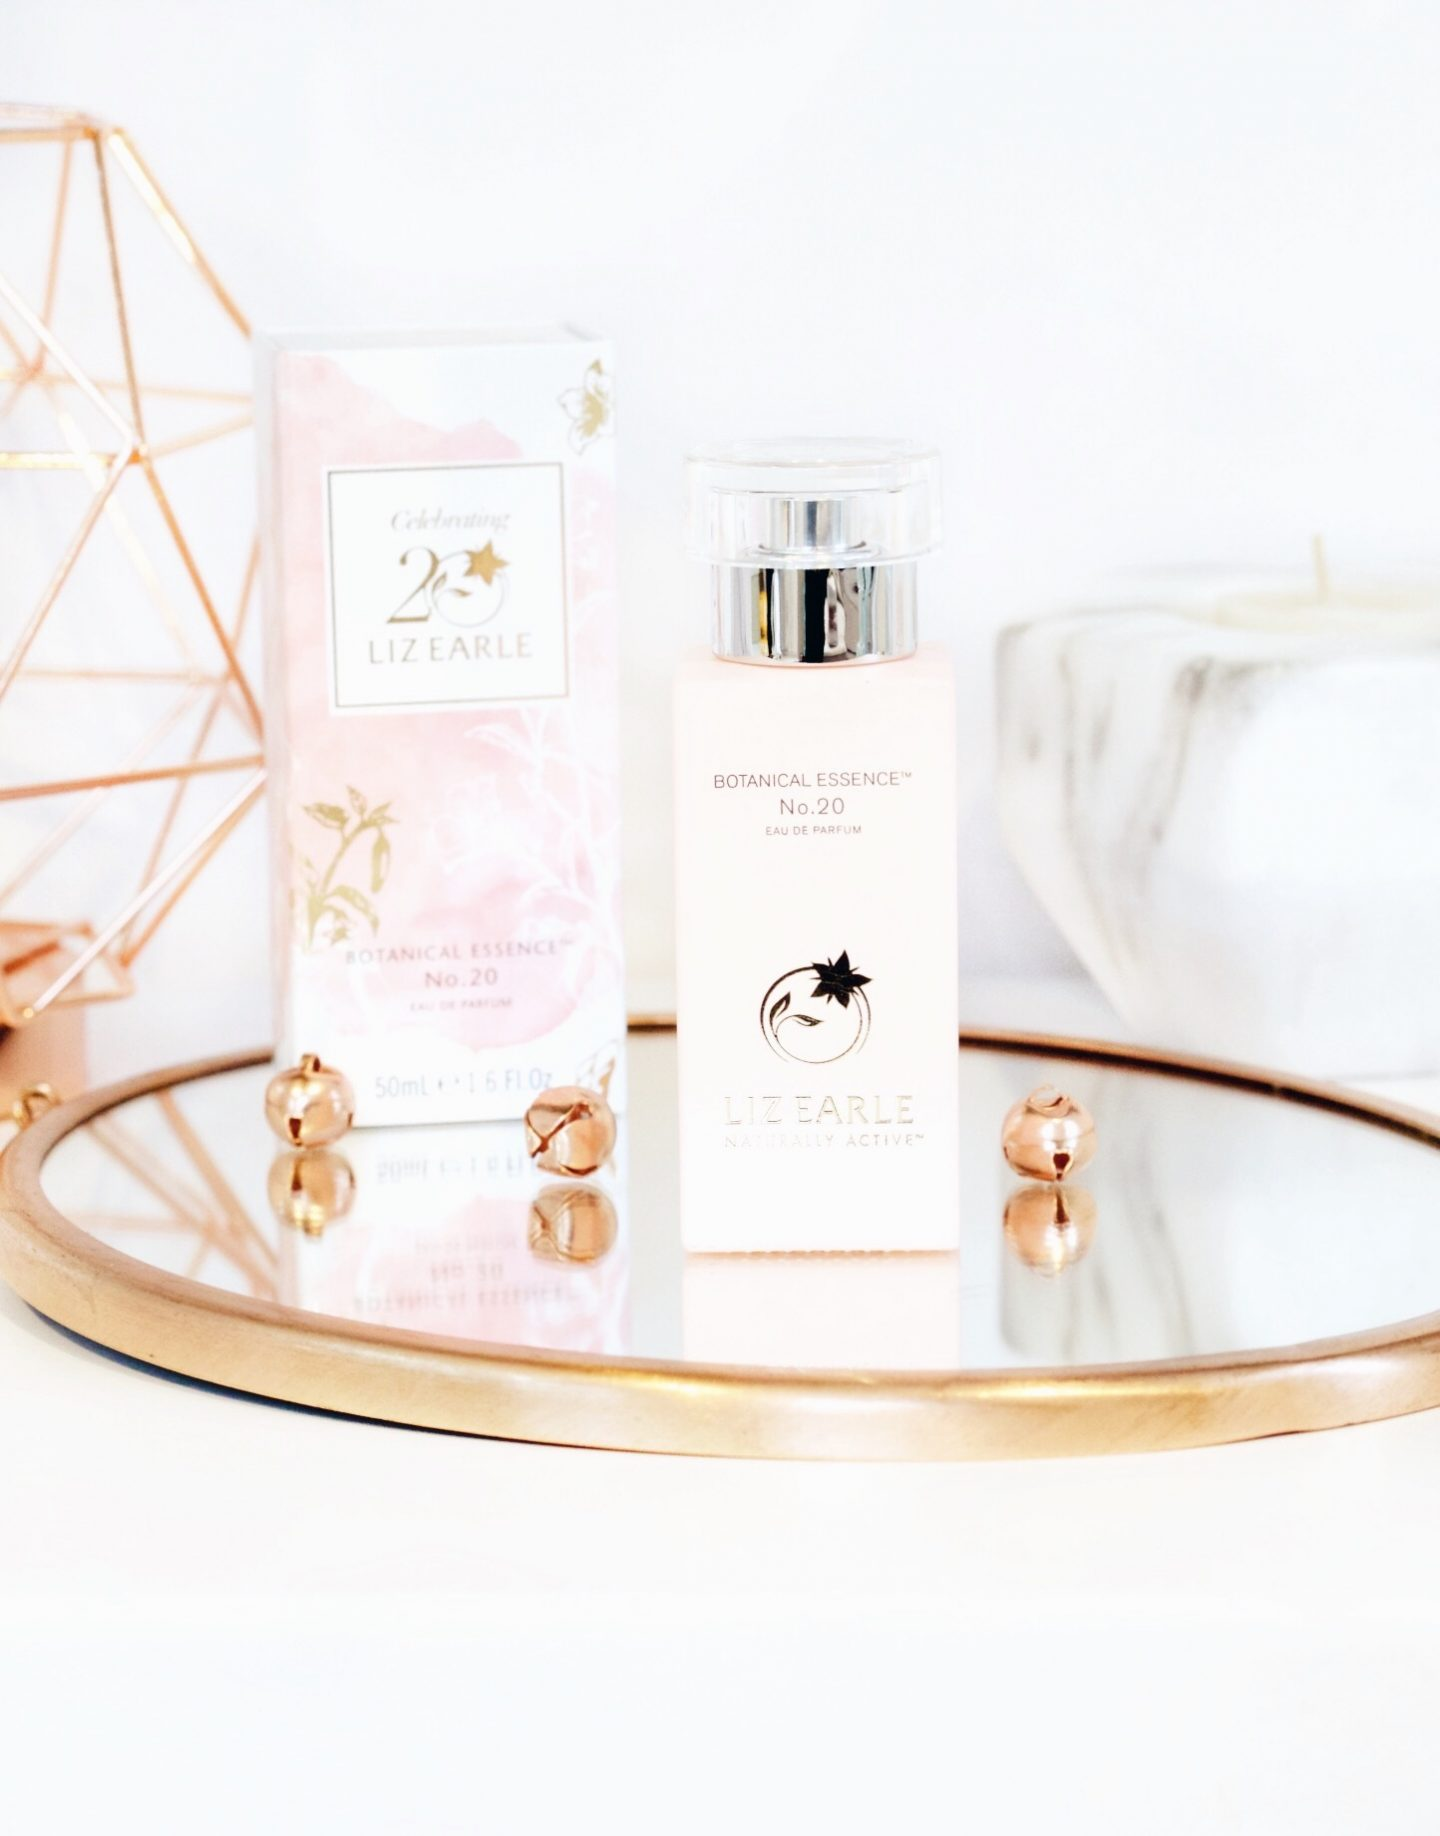 Liz Earle In Love with Botanicals Collection